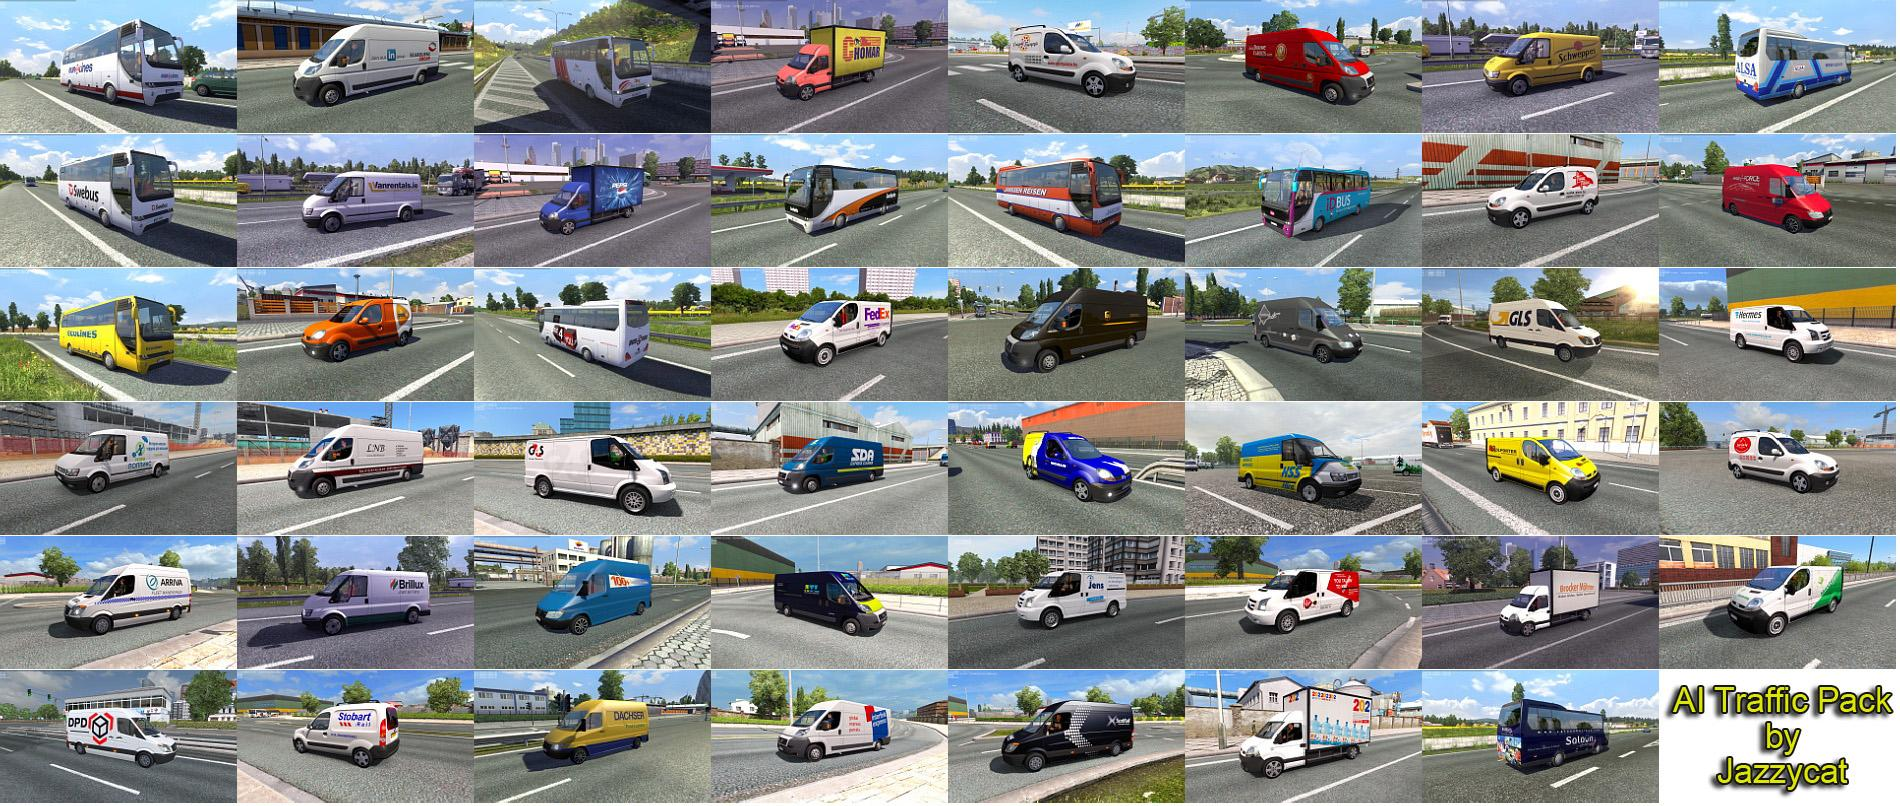 ai traffic packjazzycat v3.2 ets 2 -euro truck simulator 2 mods